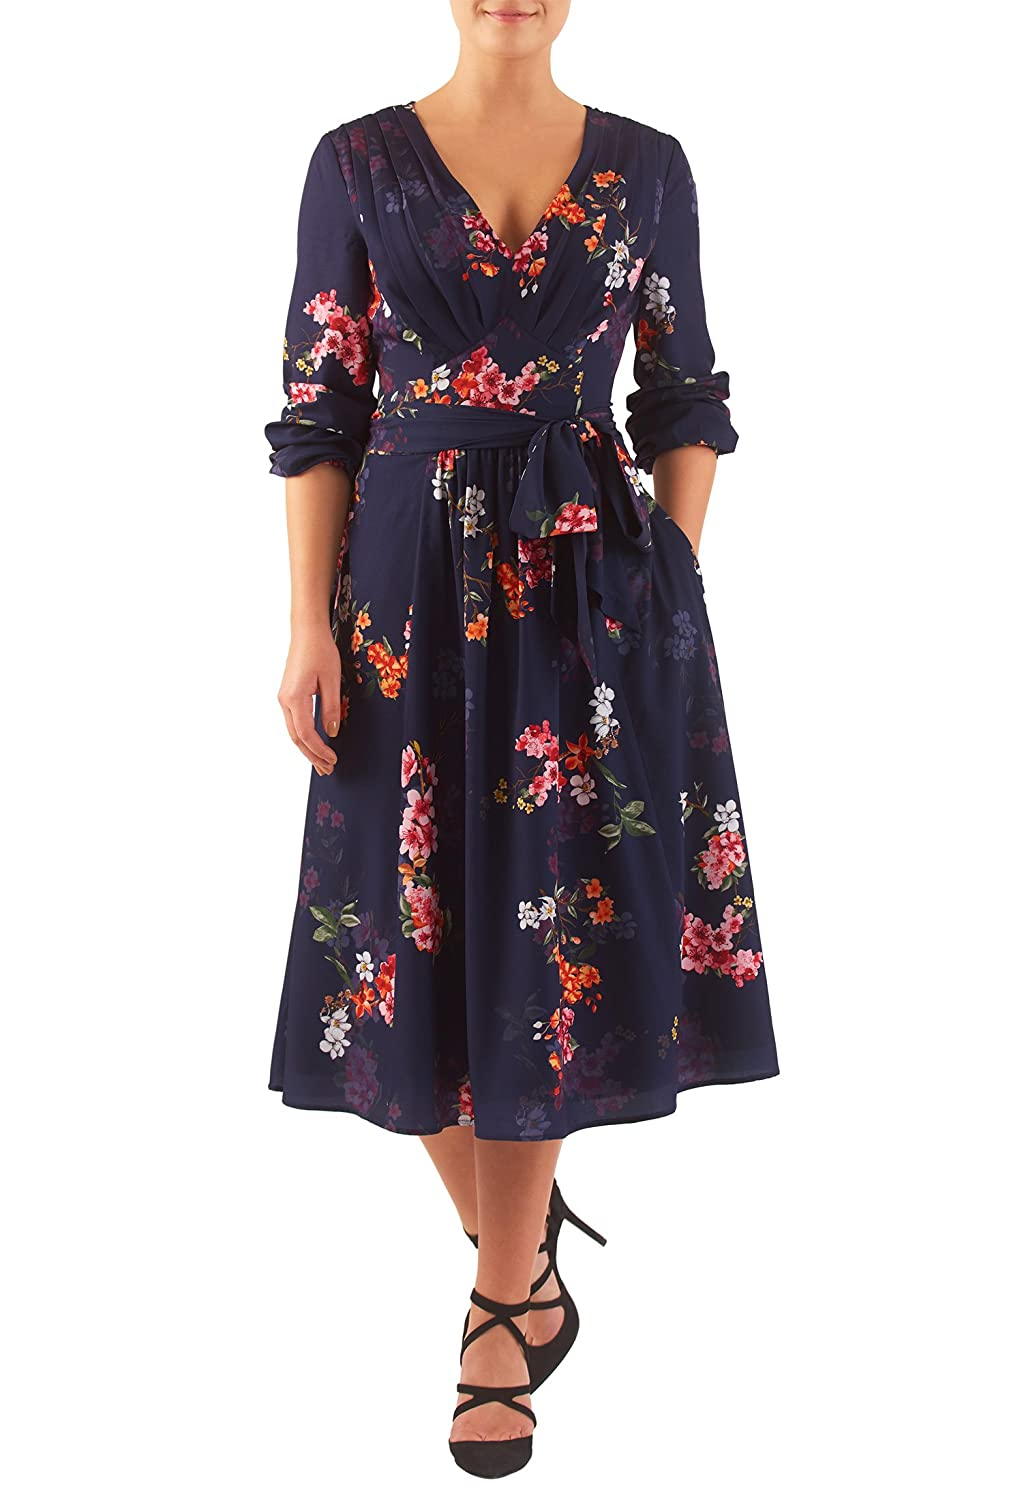 Vintage Tea Dresses, Floral Tea Dresses, Tea Length Dresses Pleated floral print crepe midi dress $69.95 AT vintagedancer.com